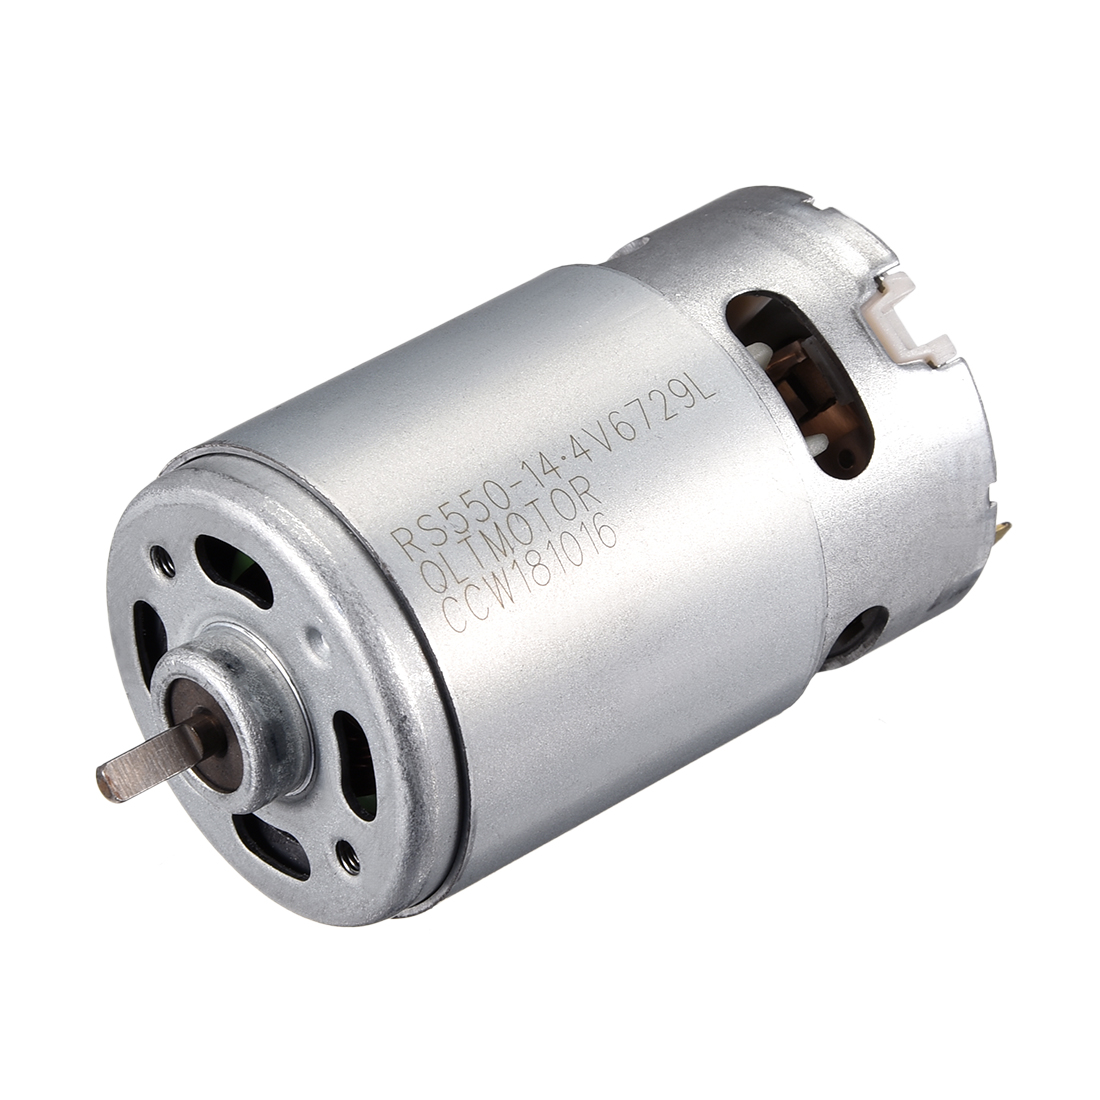 14.4V 19000RPM DC Motor for DIY Electronic Drill, Power Tools